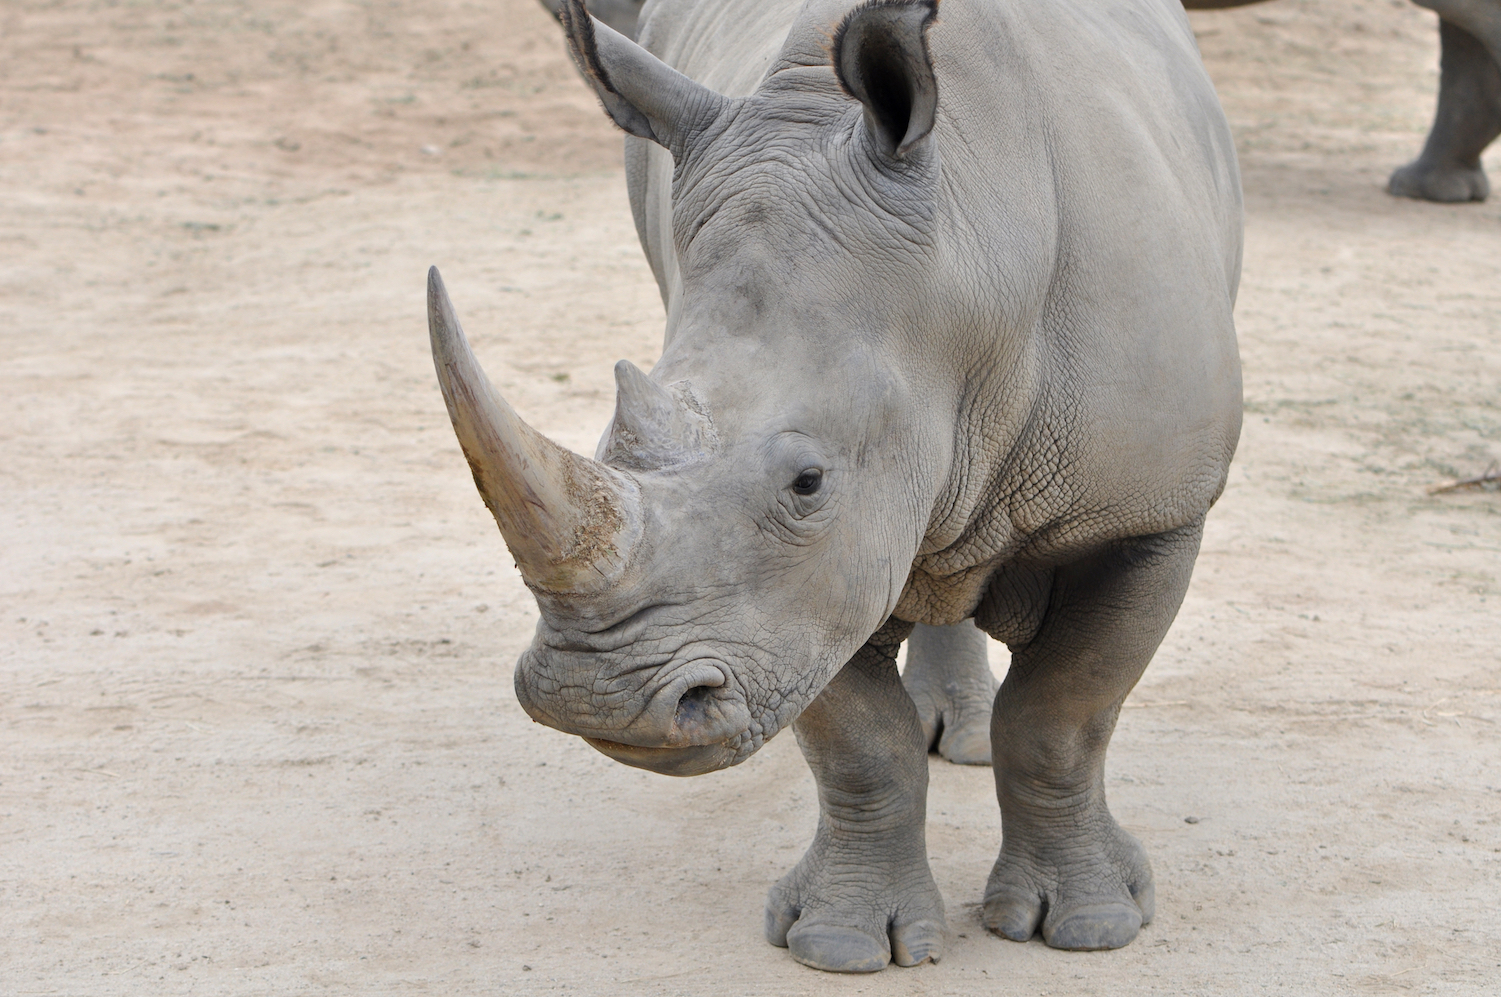 Could artificial insemination save the Northern White Rhinoceros (NWR) from extinction? A new genetic analysis of Southern and Northern White Rhinos could help pave the way for bringing NWRs back from the brink.